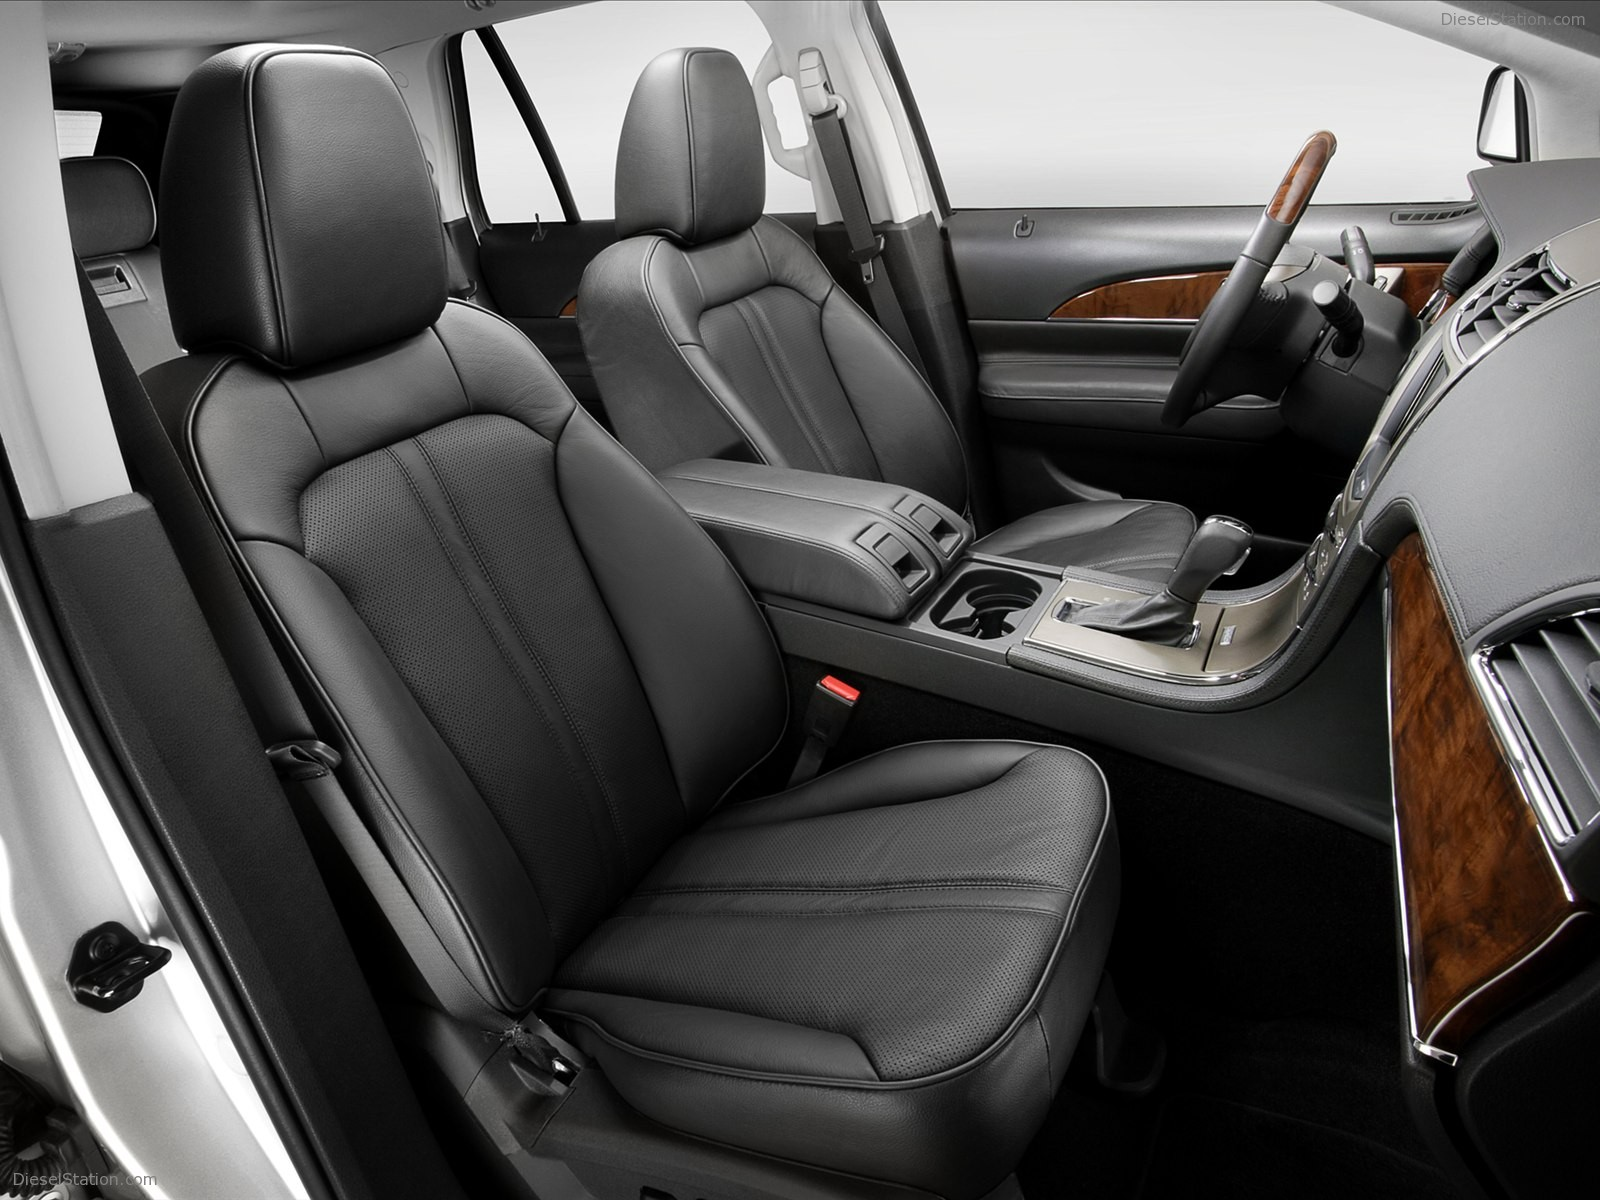 2012 Lincoln Mkx #16